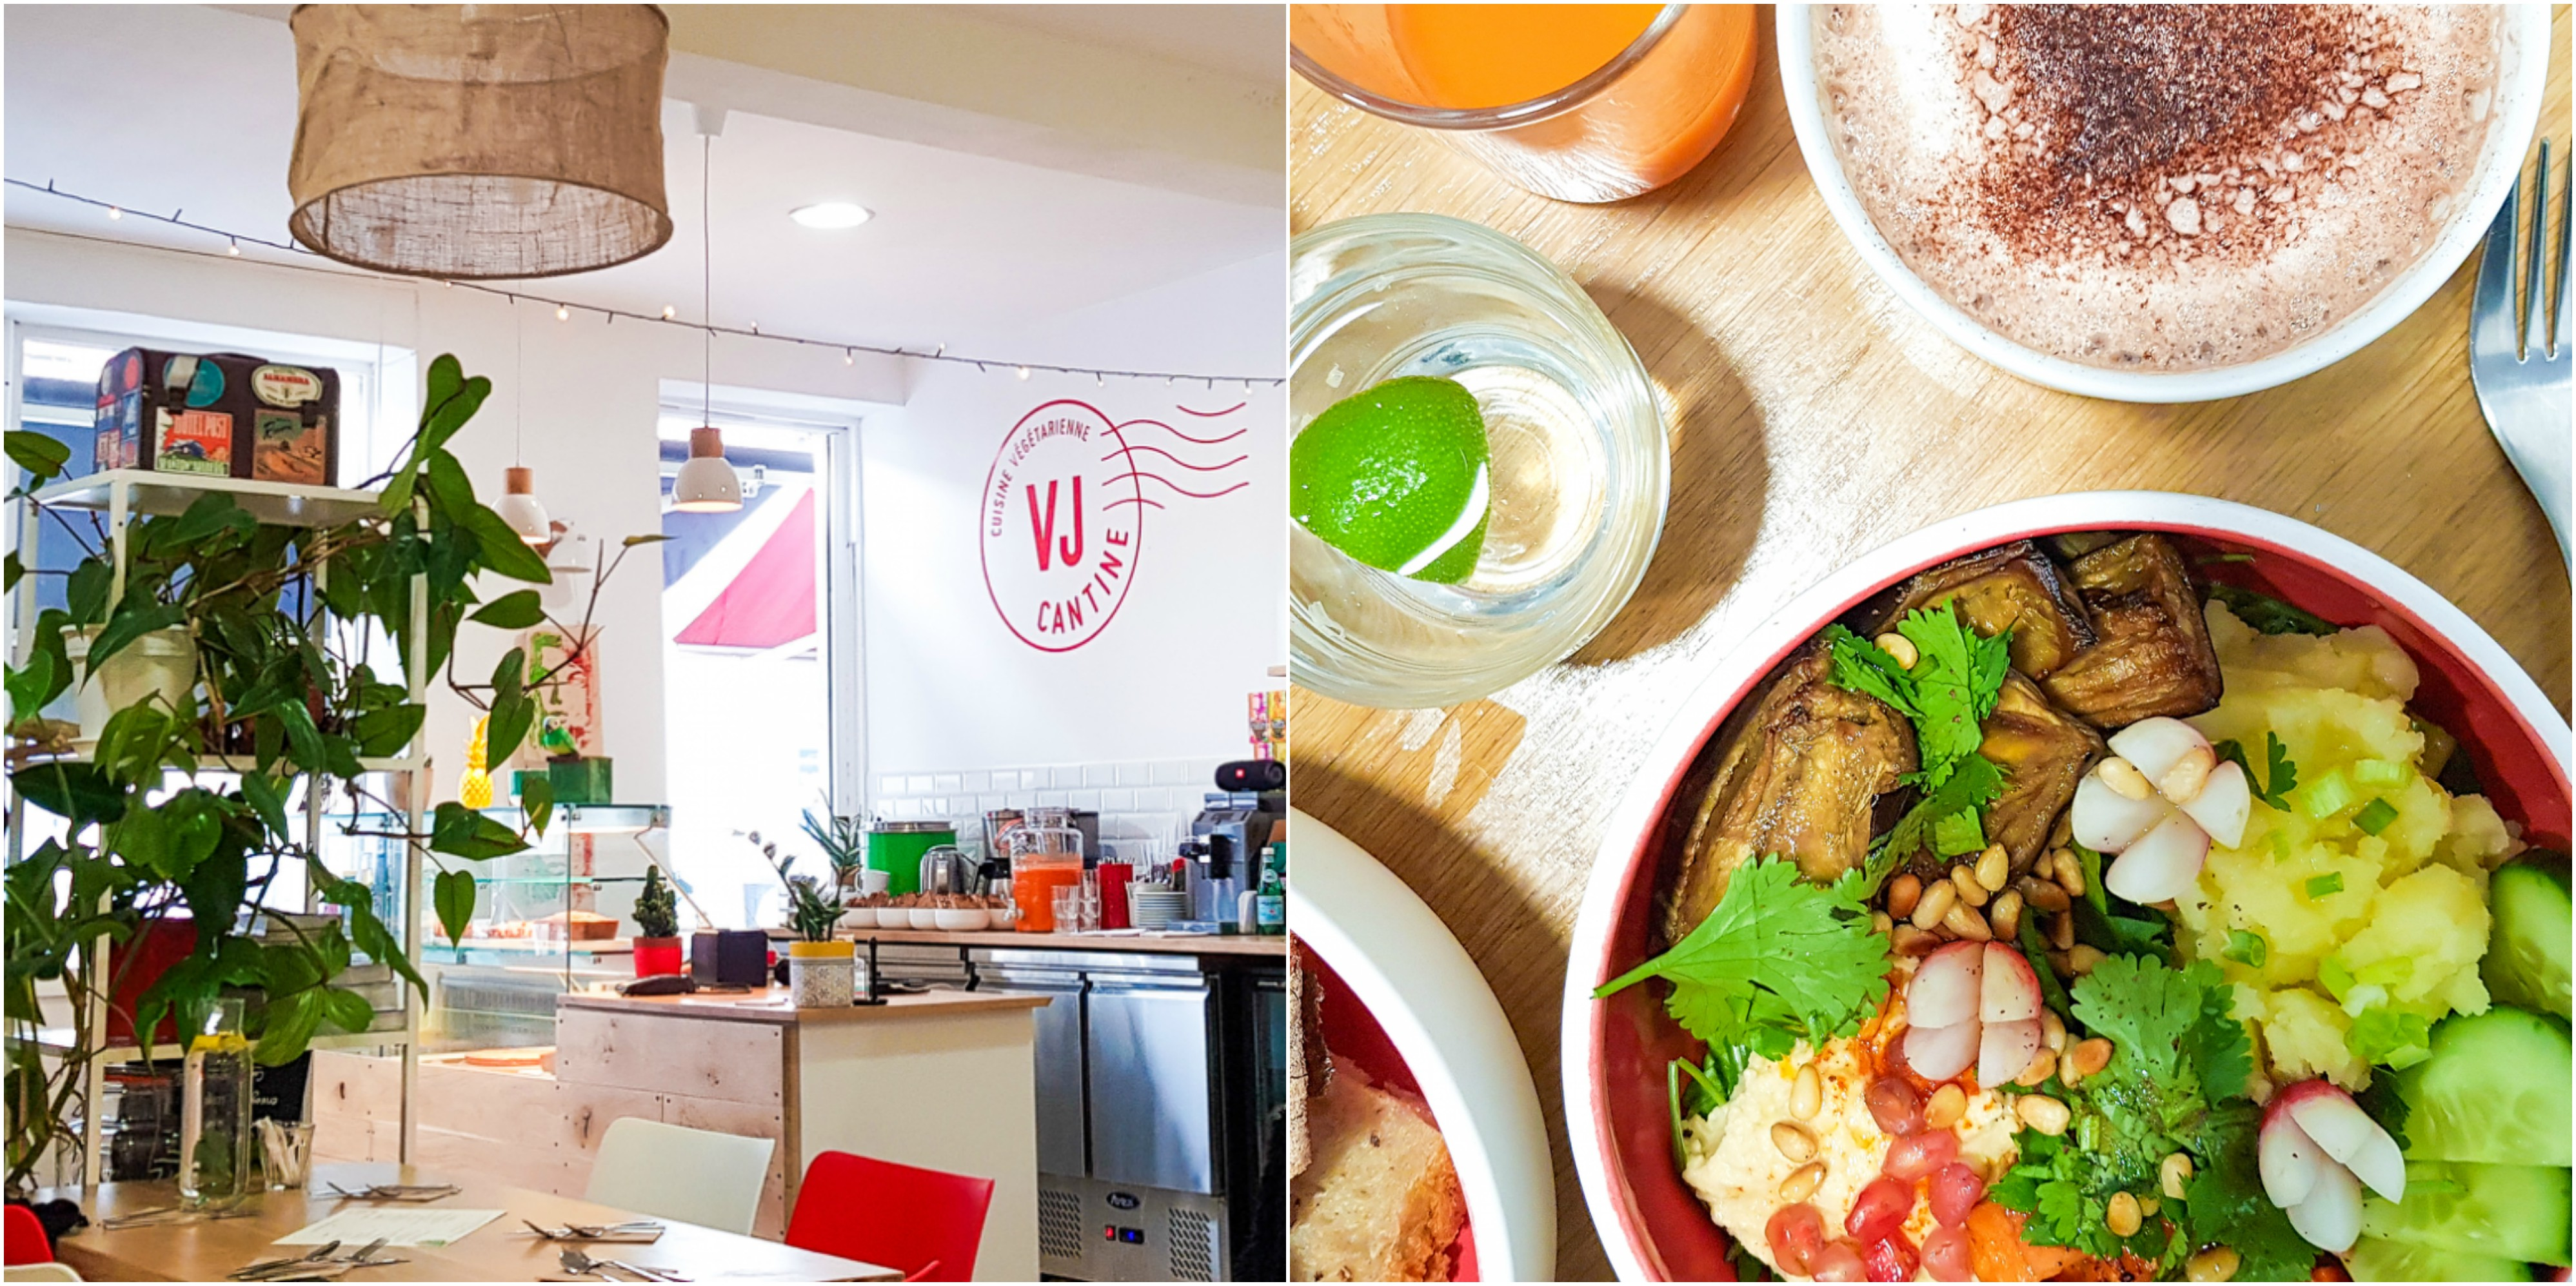 vj-cantine-bordeaux-restaurant-végétarien-vegan-brunch